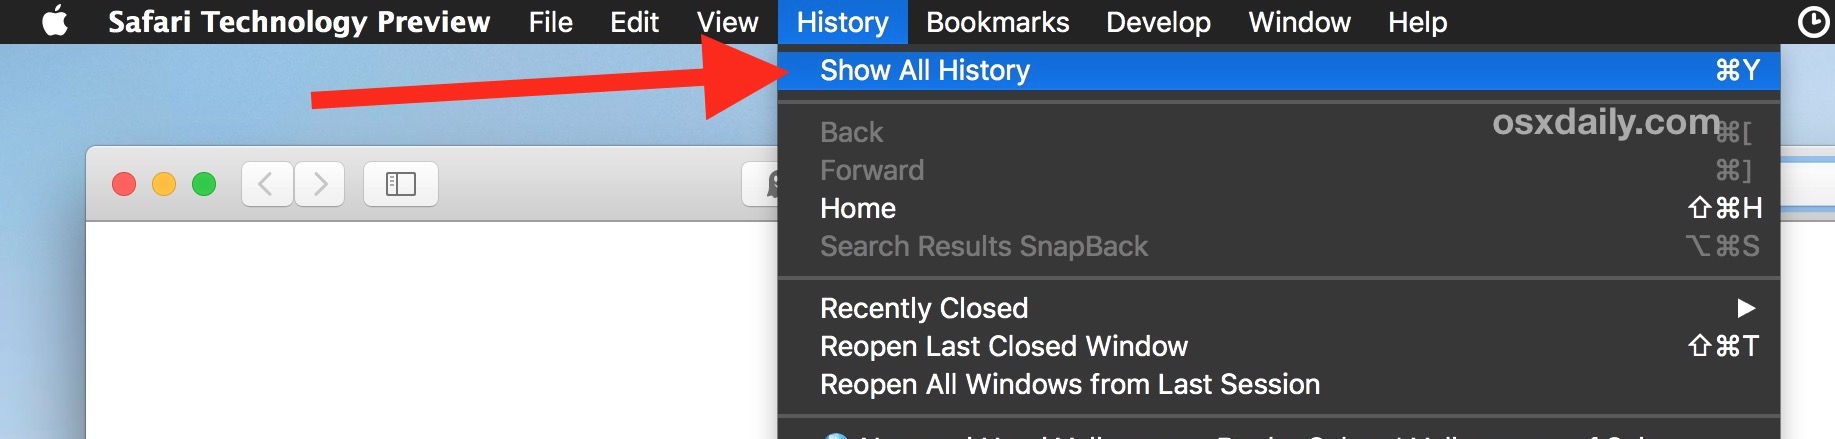 How To Access Search Safari History On Mac Osxdaily